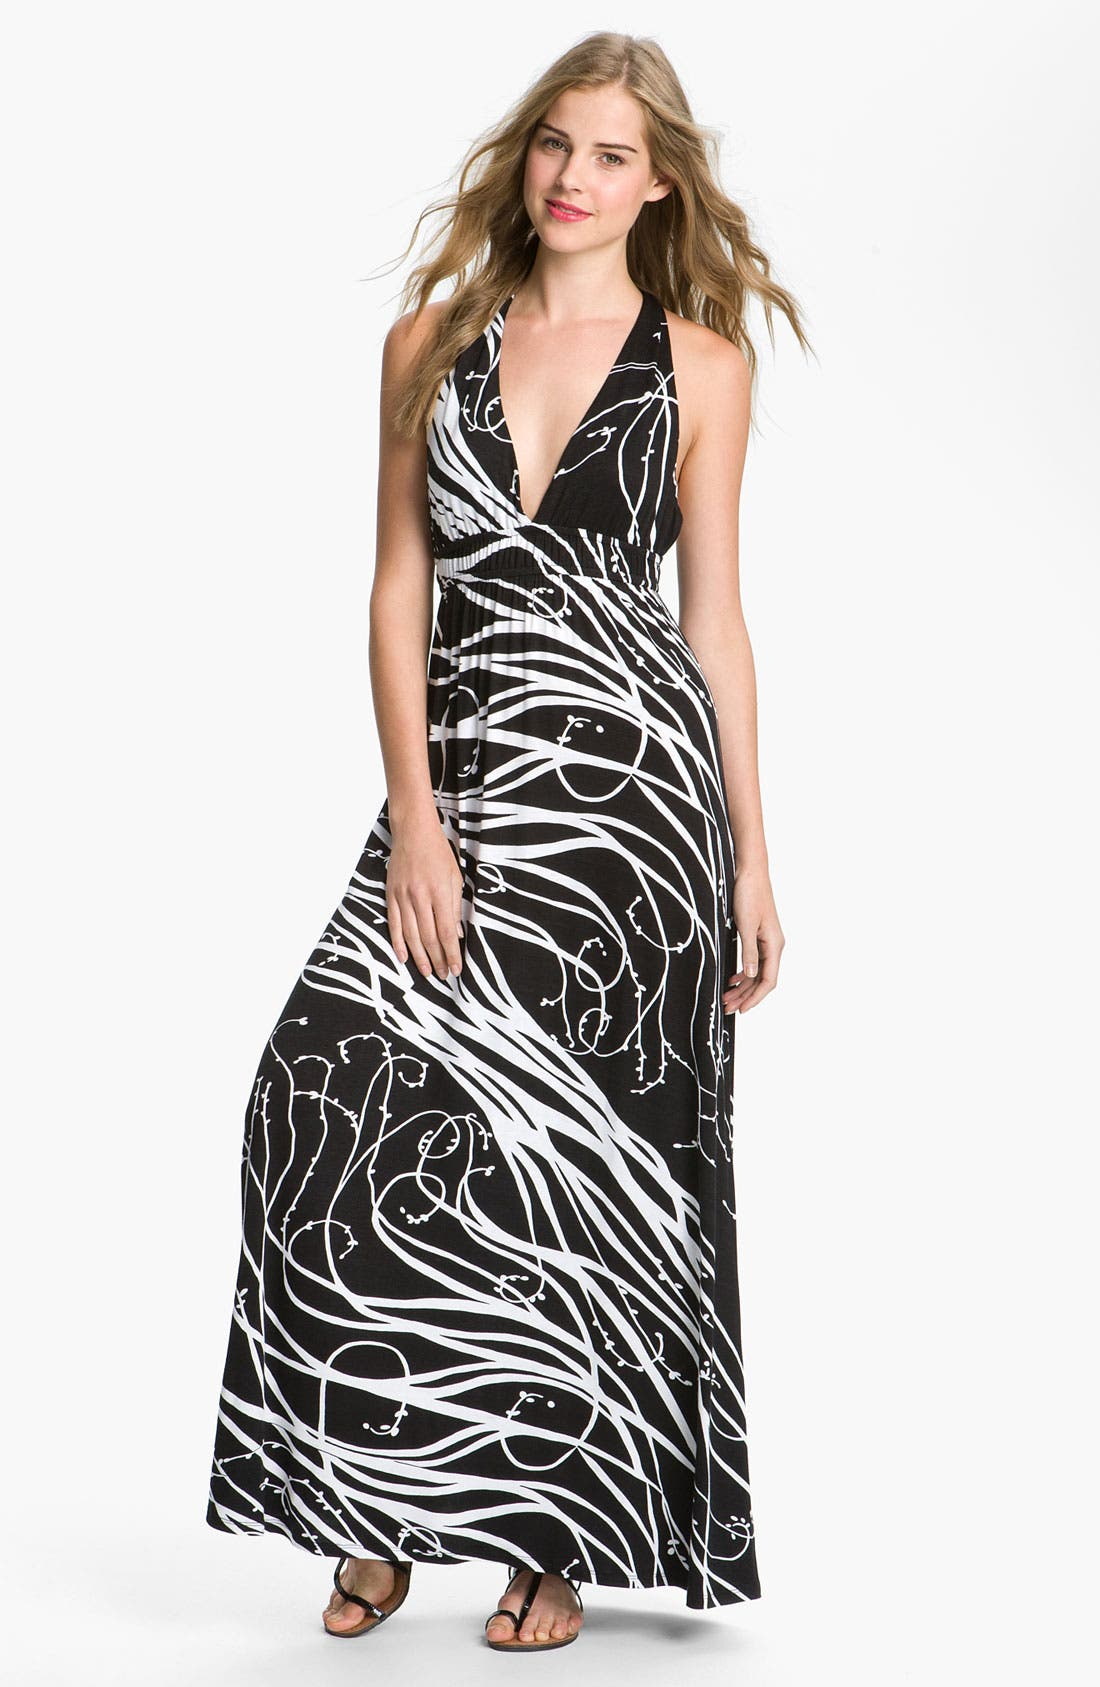 Main Image - Max & Mia Empire Waist Maxi Dress